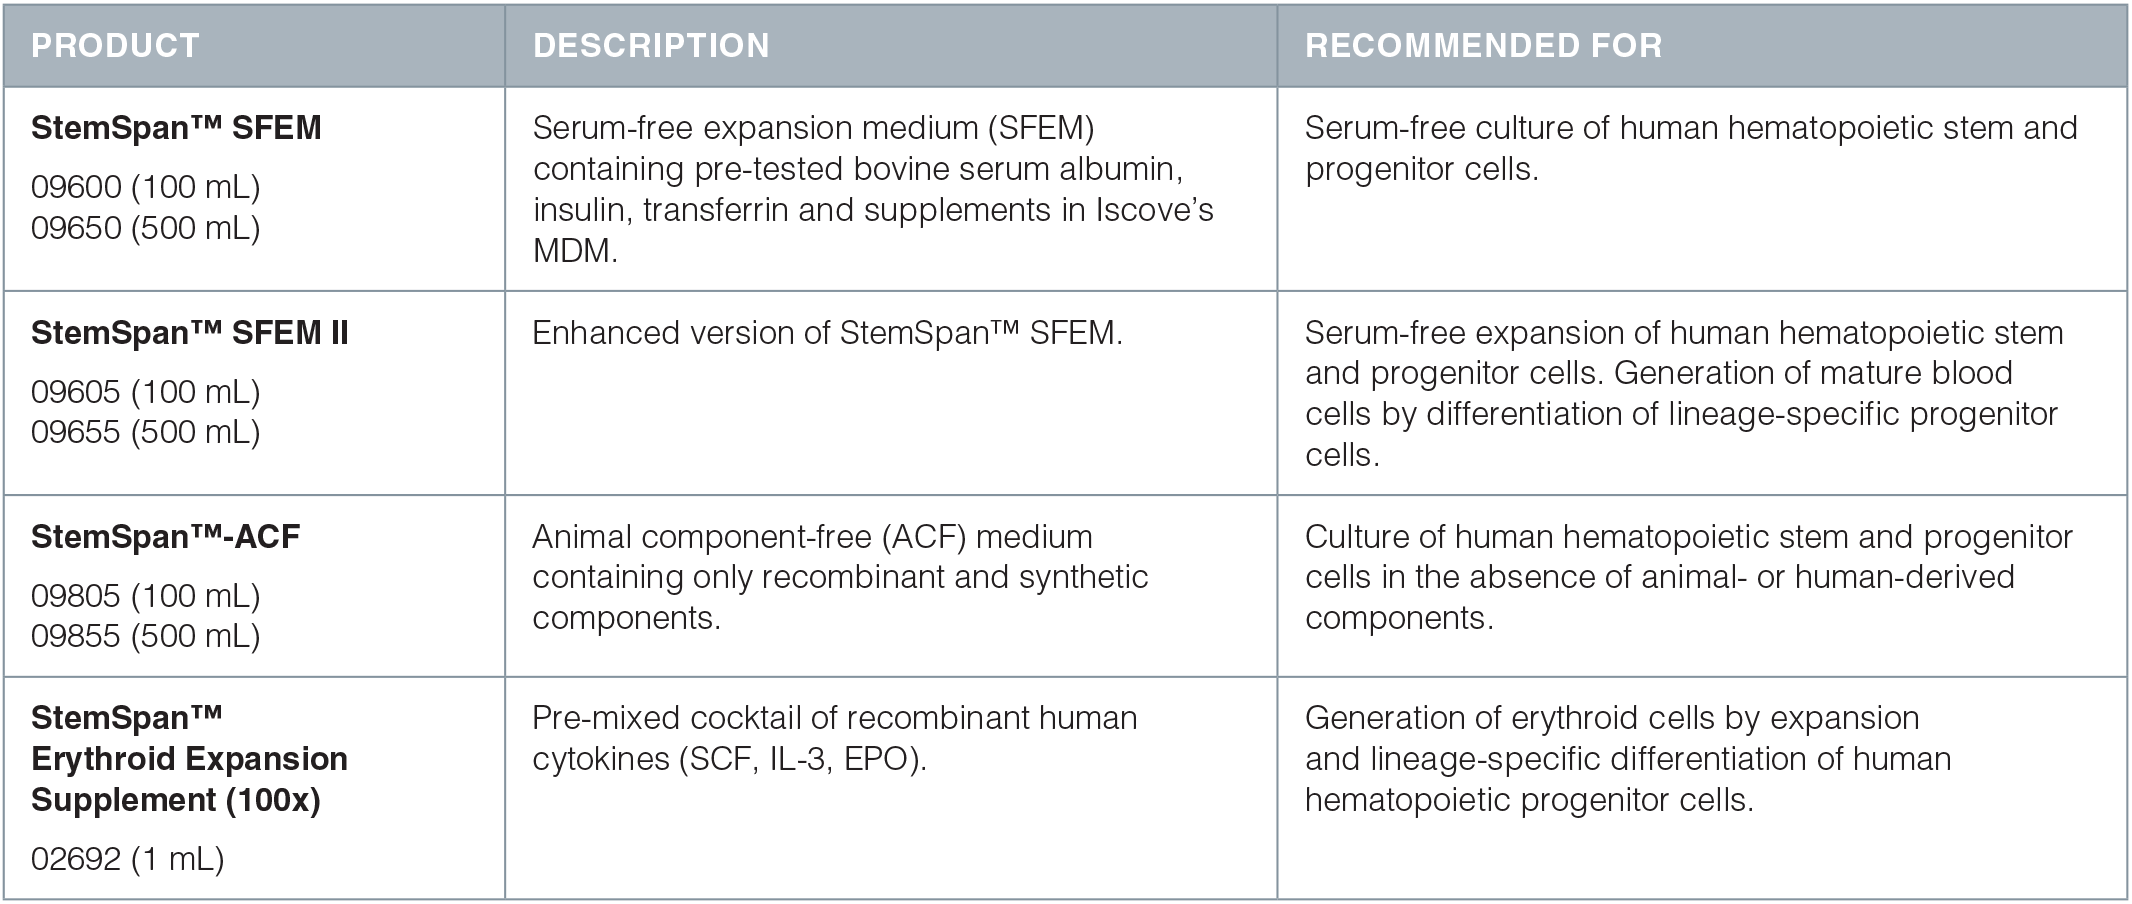 StemSpan™ serum-free expansion media and Erythroid Expansion Supplement product list